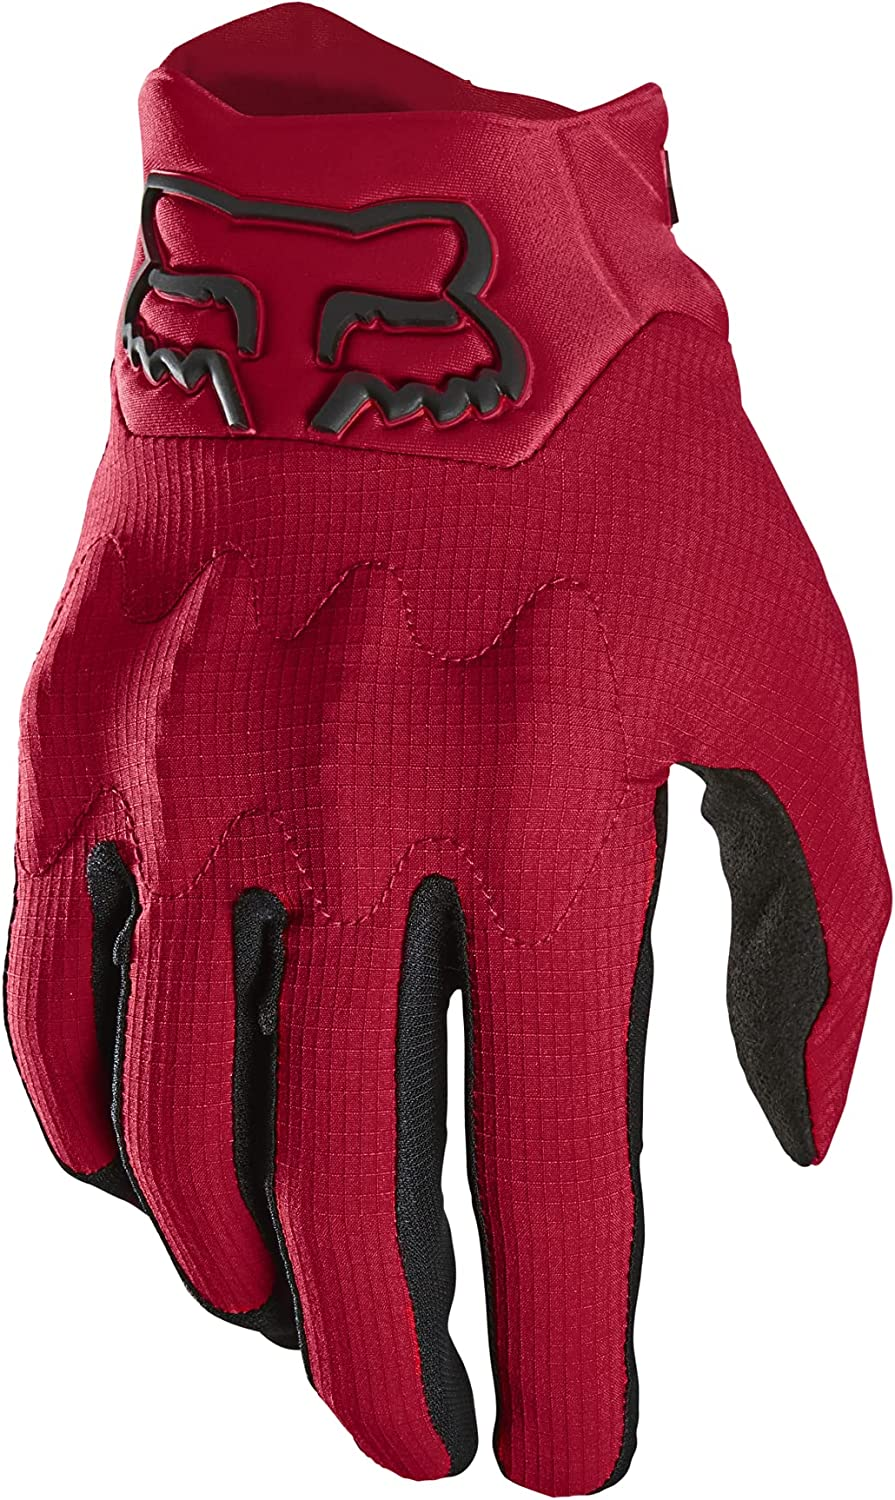 Challenge the lowest price of Japan Fox Racing Men's National products Glove XL RED Black